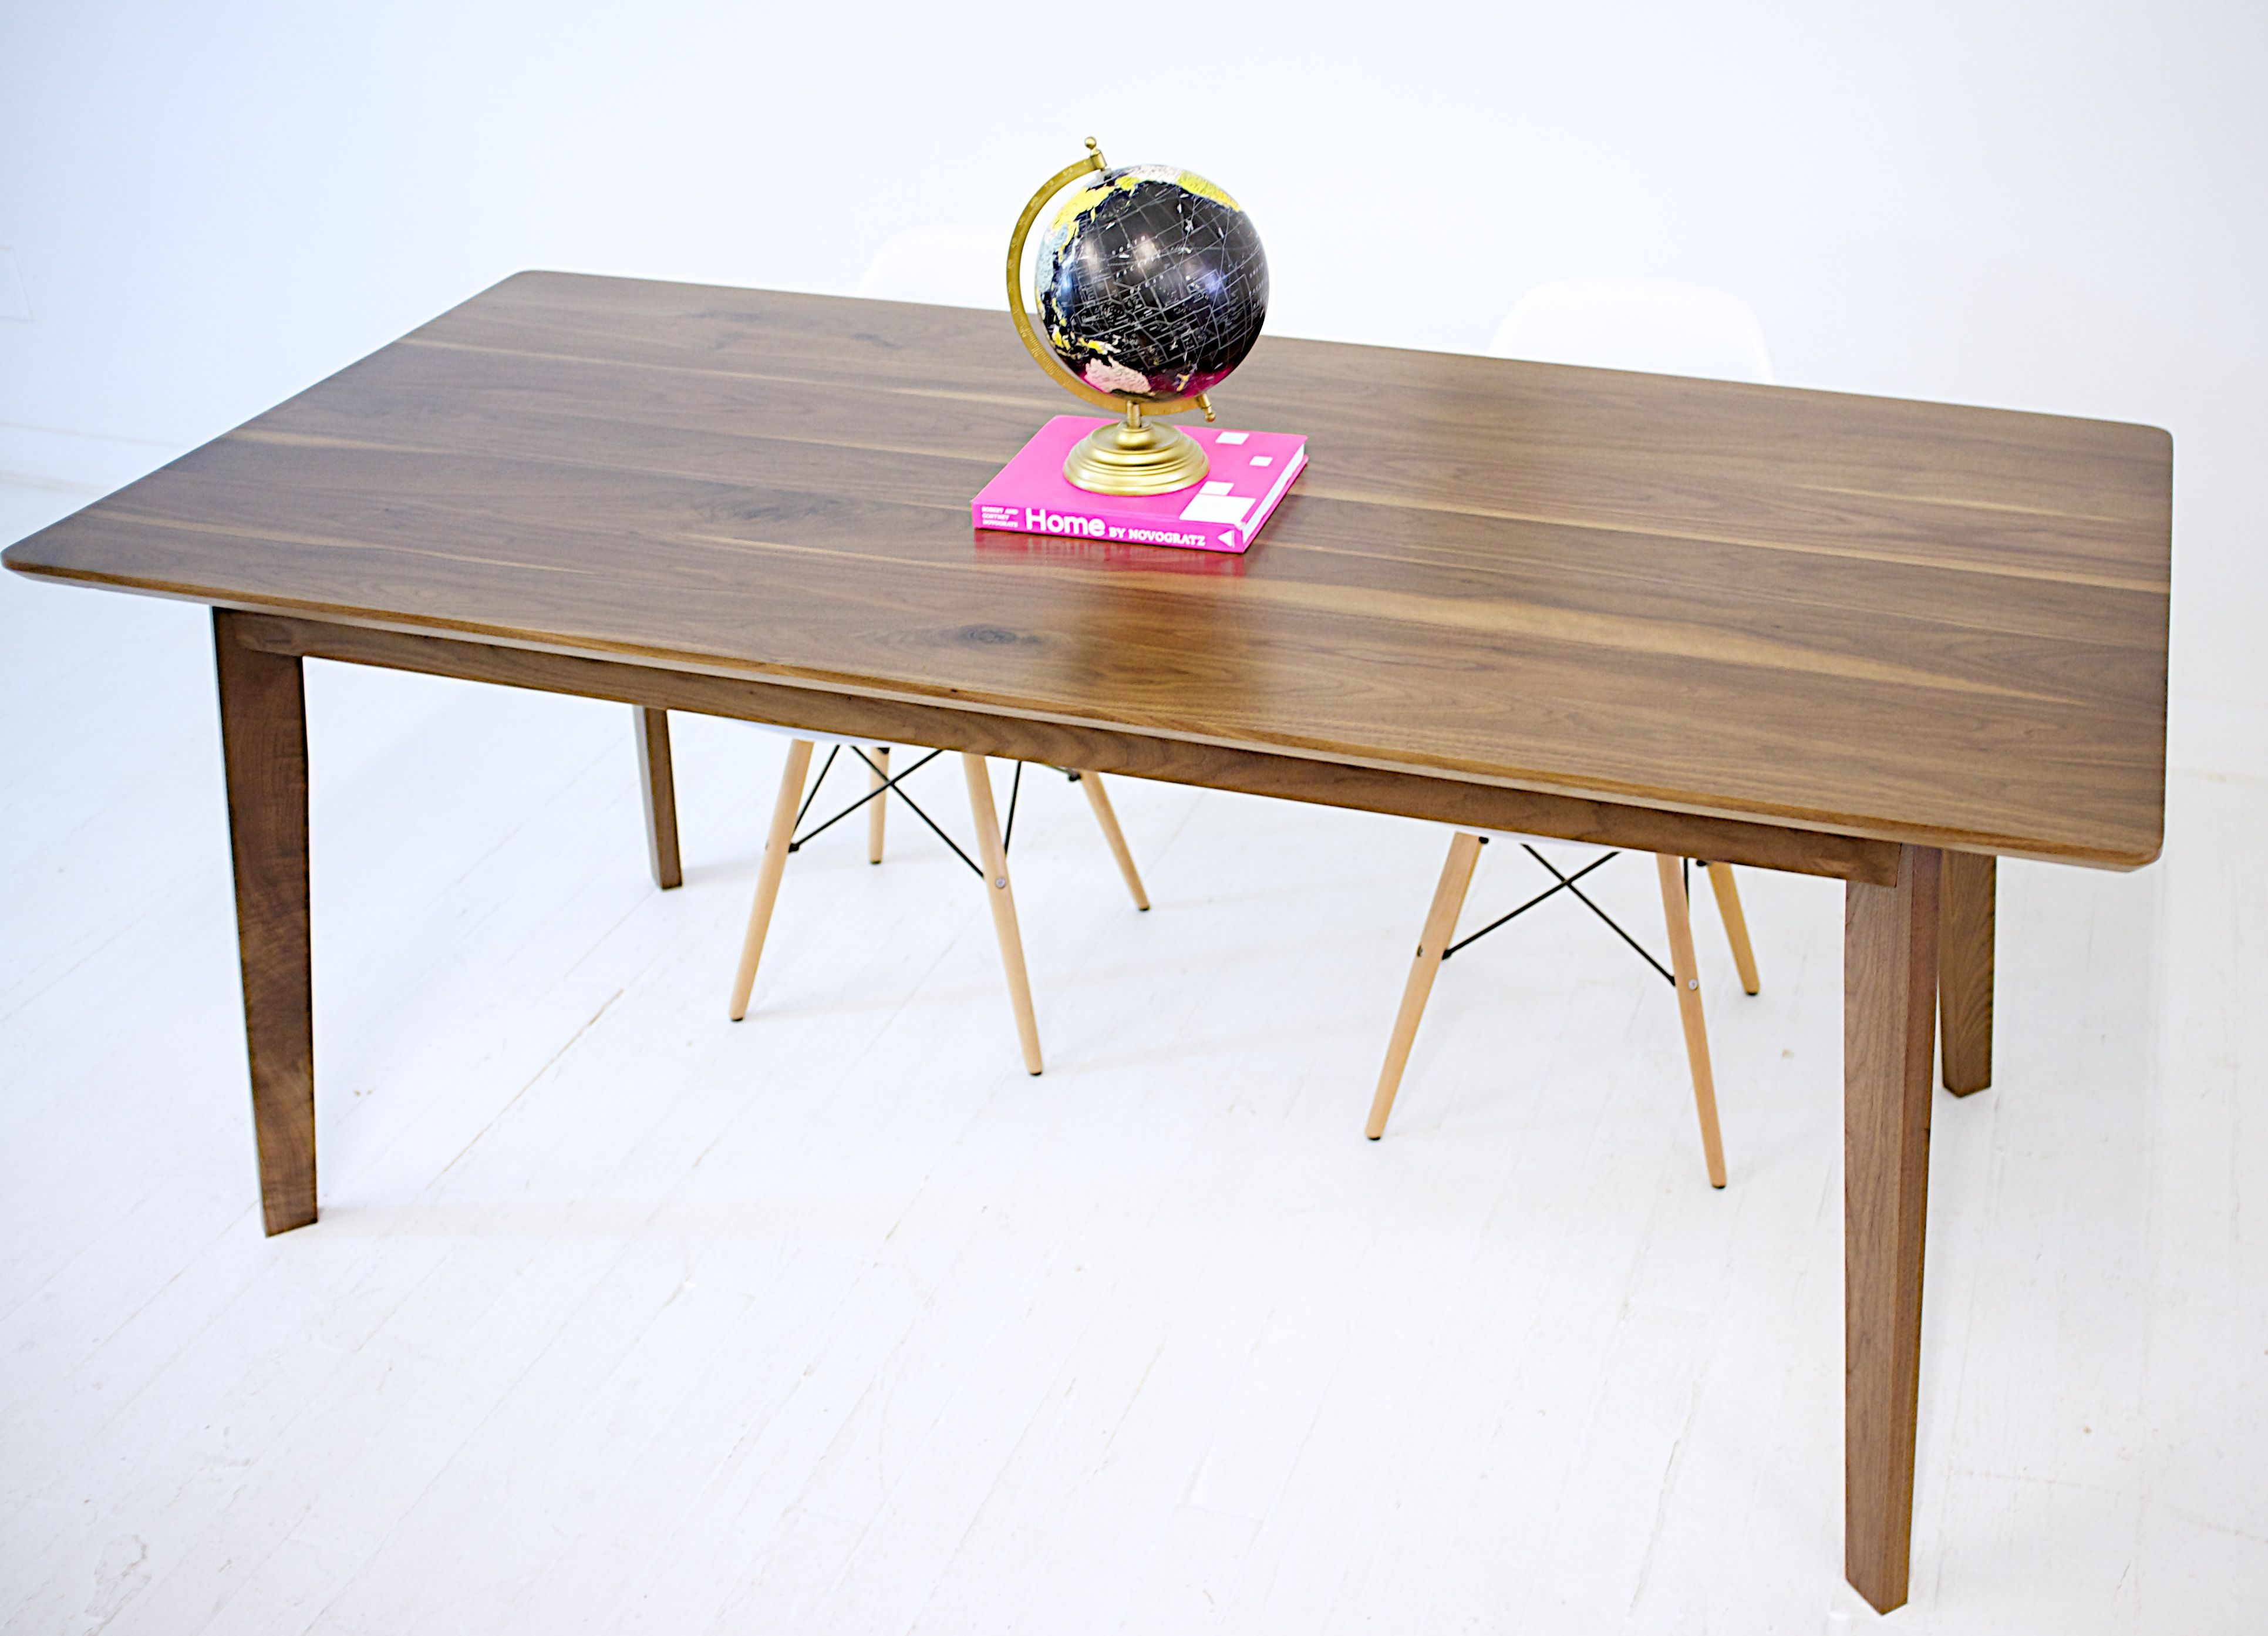 buy a hand crafted the bossa nova solid walnut mid century modern dining table made to order. Black Bedroom Furniture Sets. Home Design Ideas